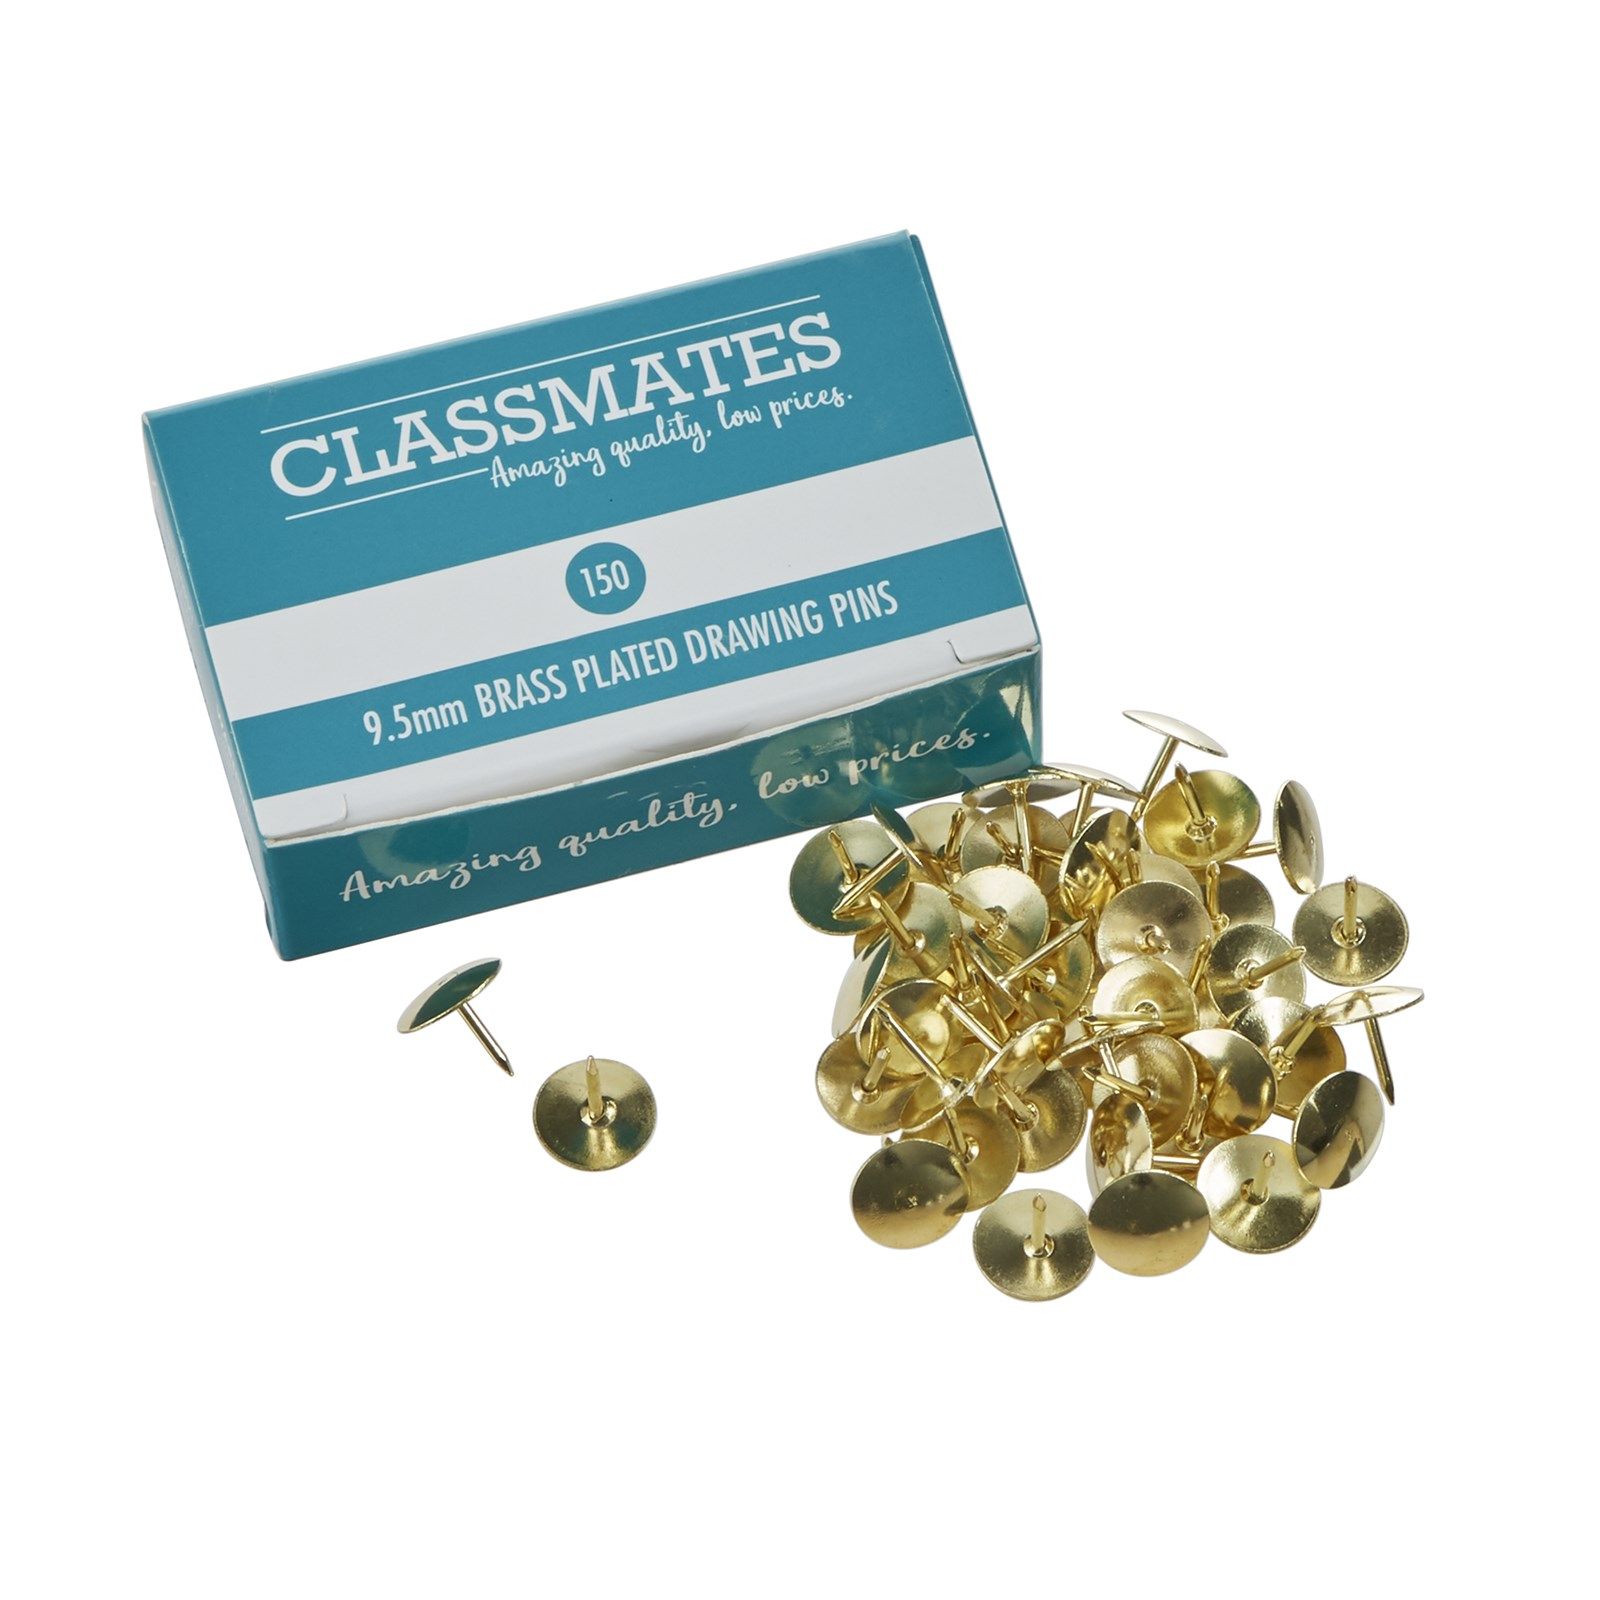 Classmates Drawing Pins 9.5mm - Pack of 150